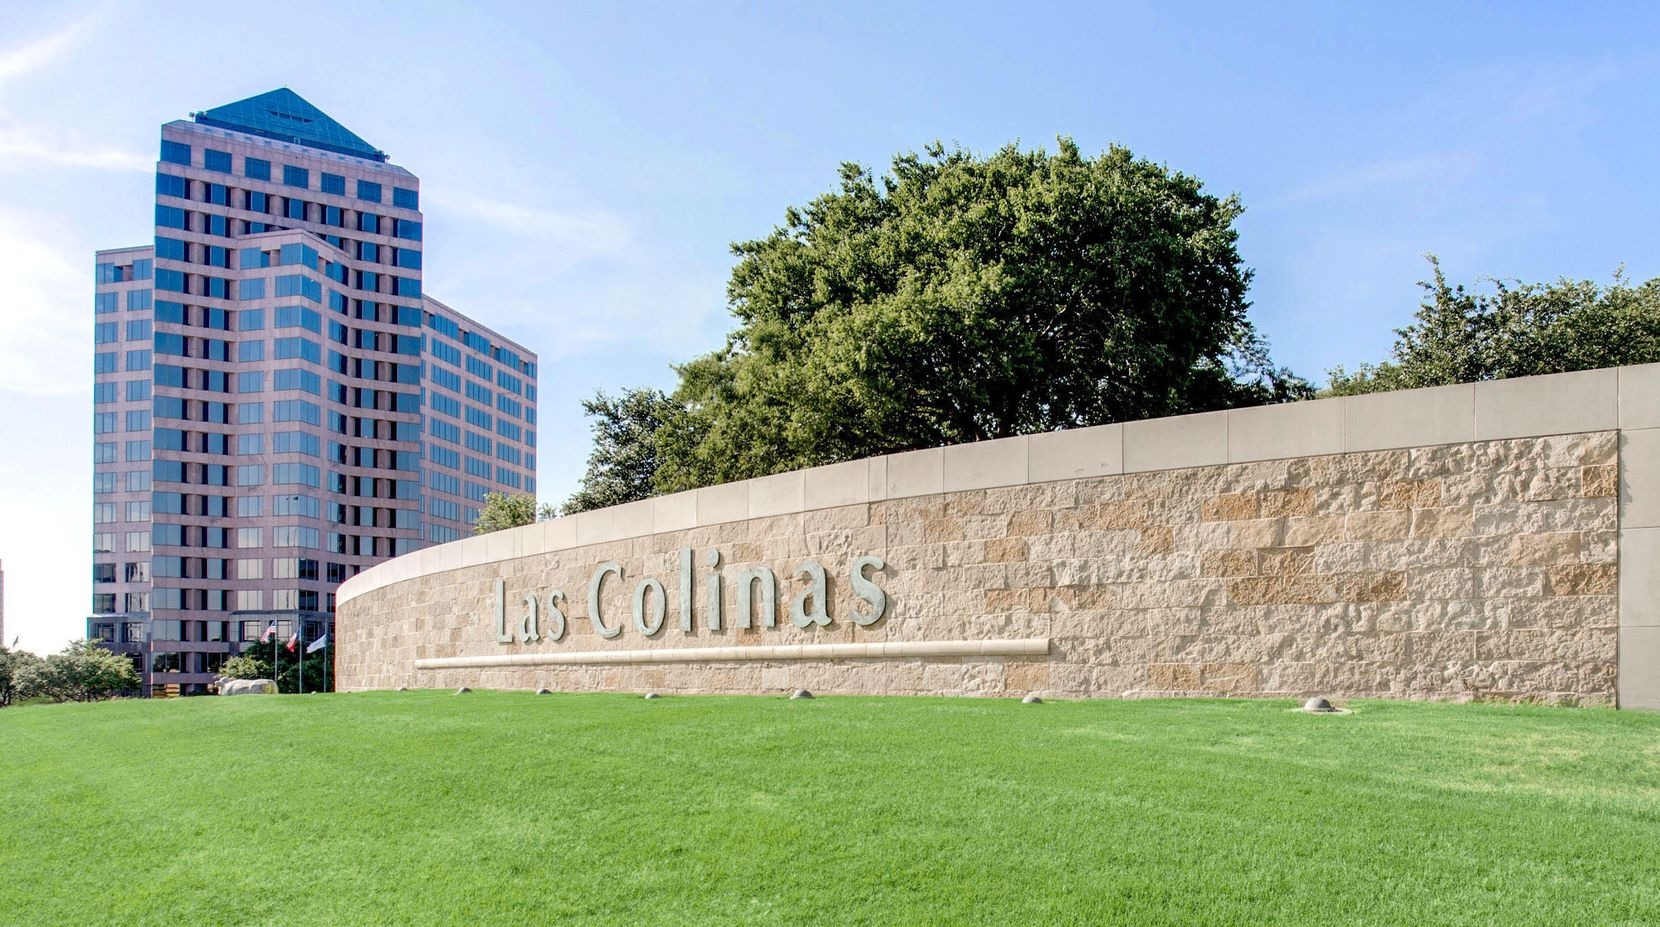 The American Athletic Conference is moving to The Summit at Las Colinas tower in Irving.